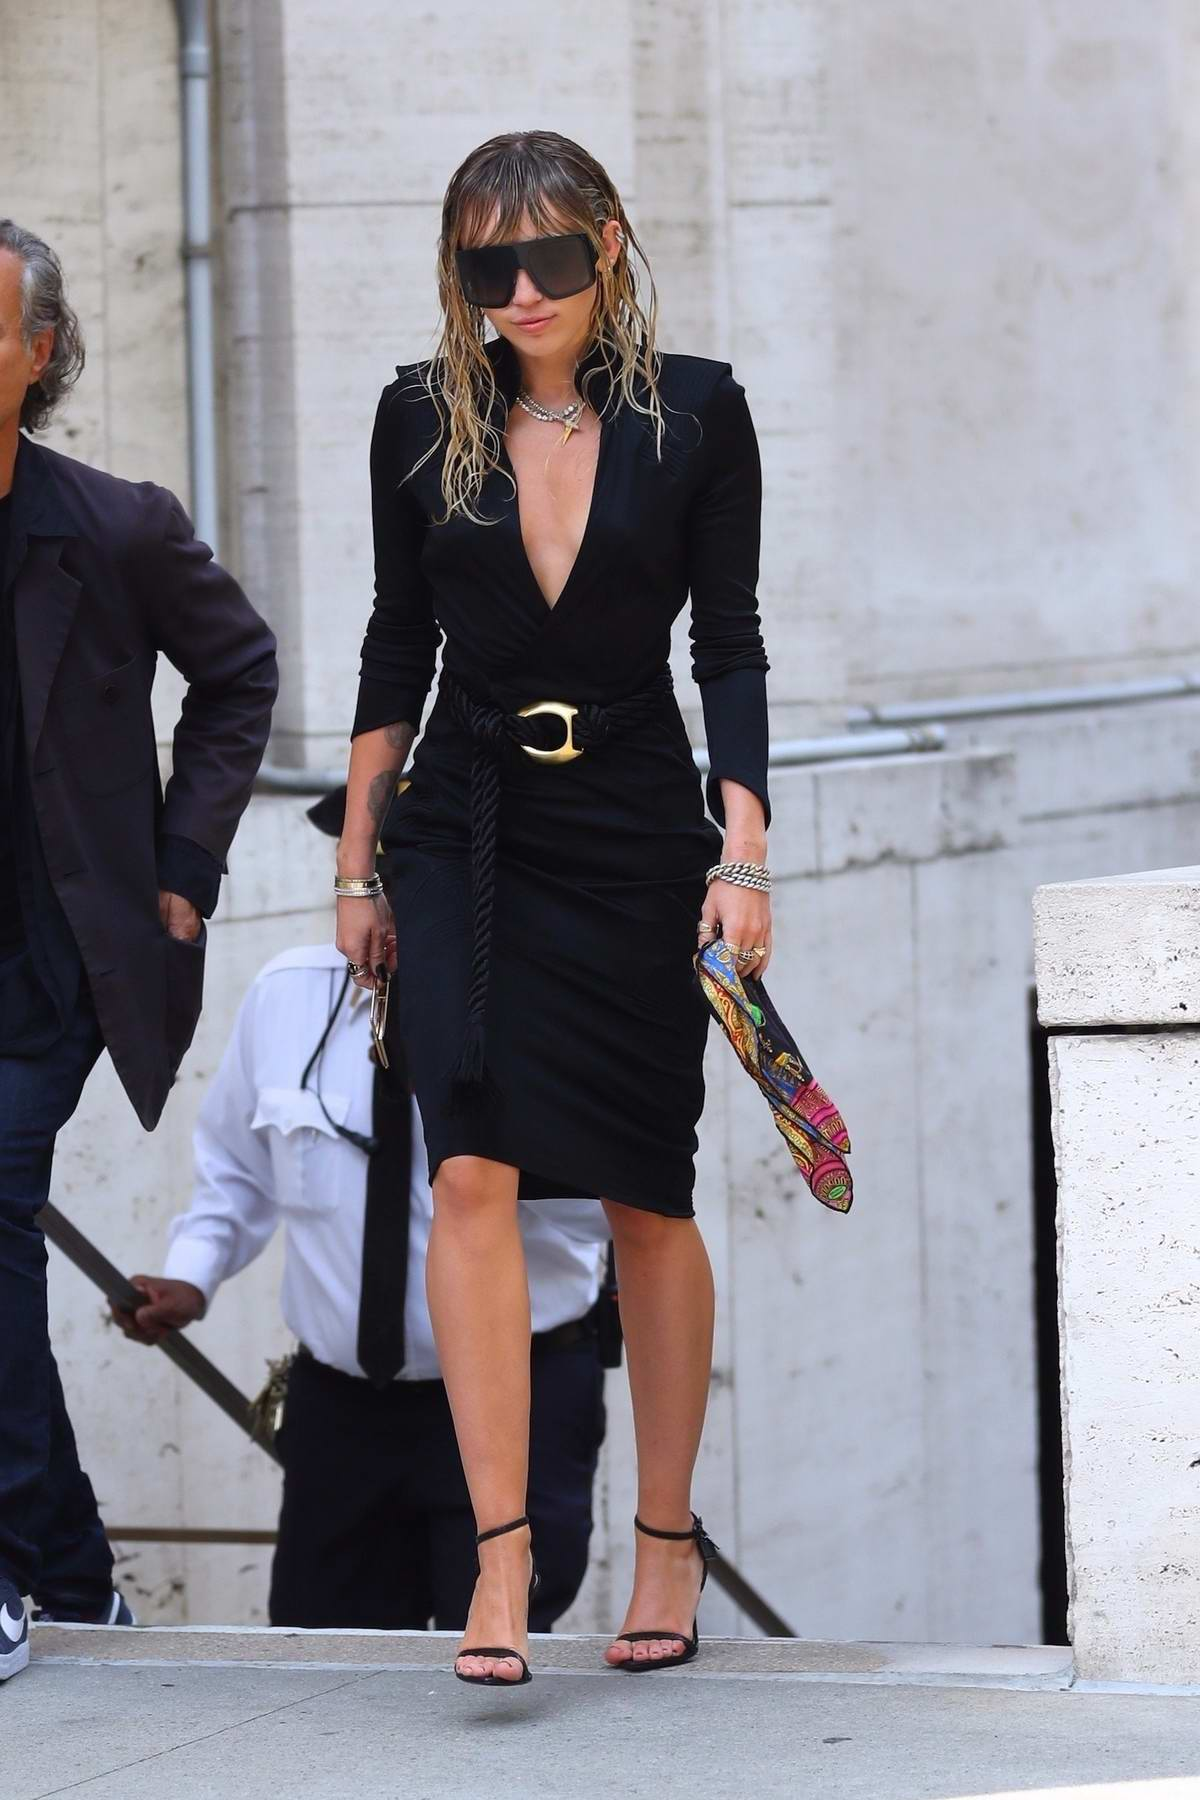 Miley Cyrus stuns in a black dress as she leaves the David Koch Center in New York City